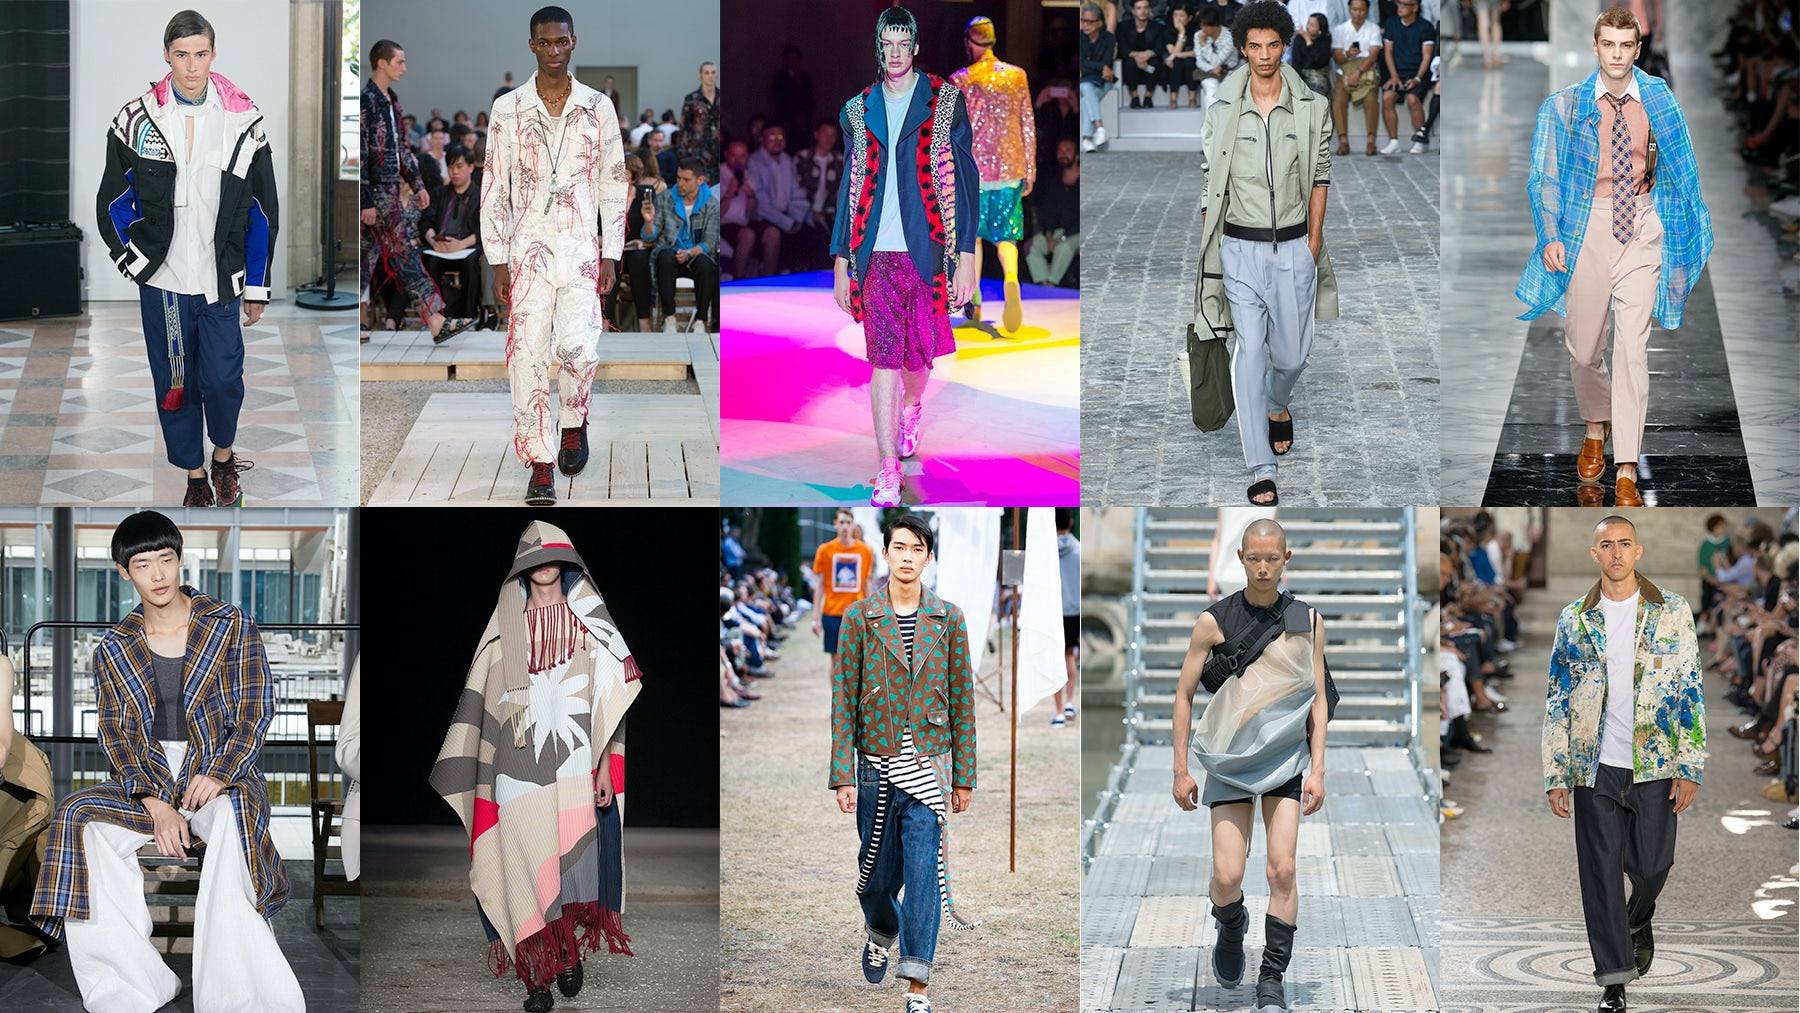 Article cover of Top 10 Menswear Shows for Spring/Summer 2018